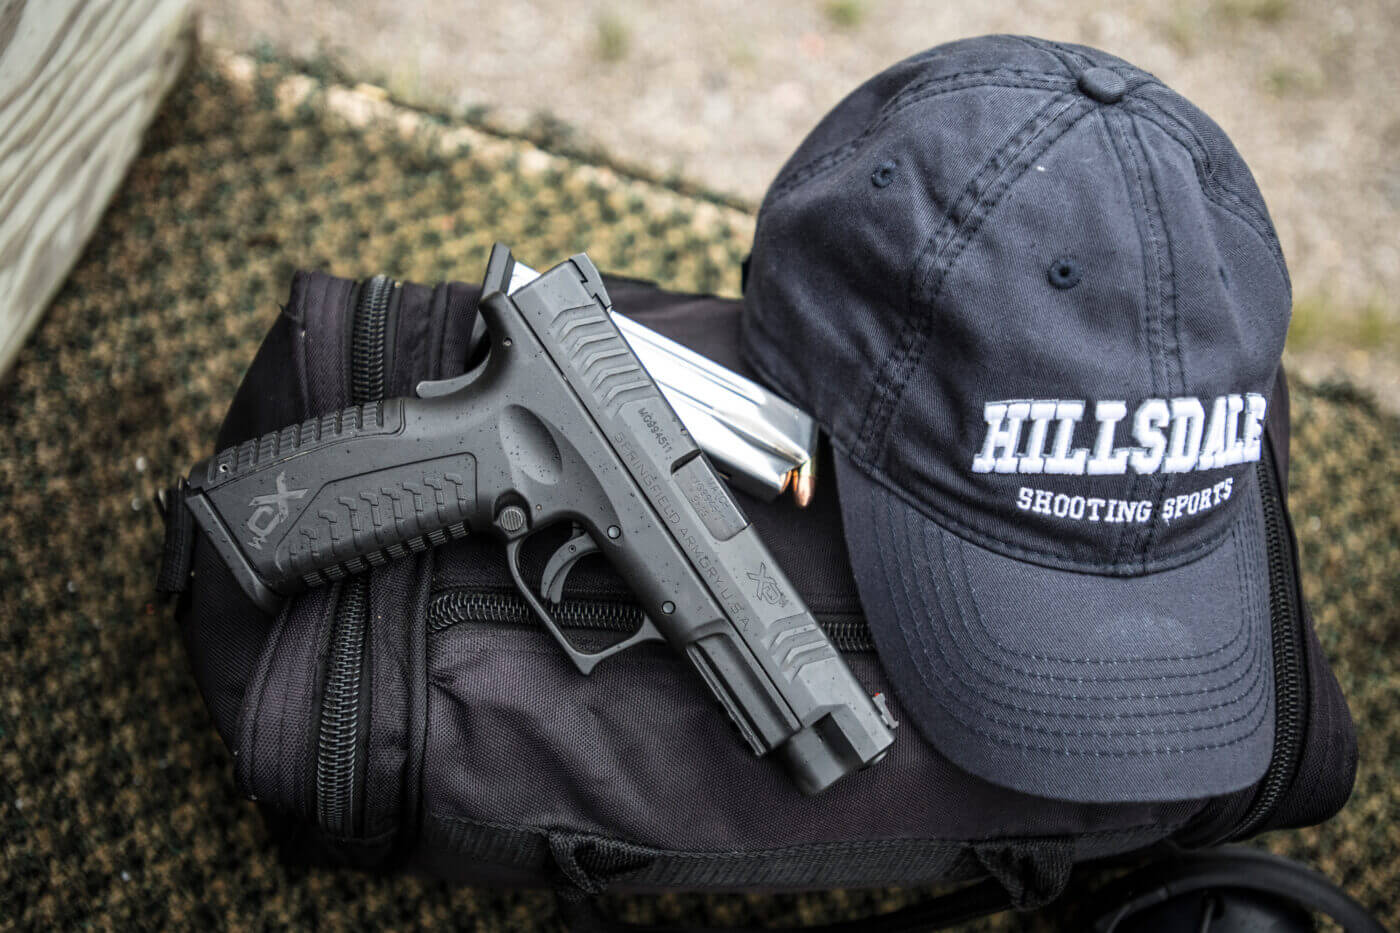 Springfield Armory pistol and Hillsdale College ball cap